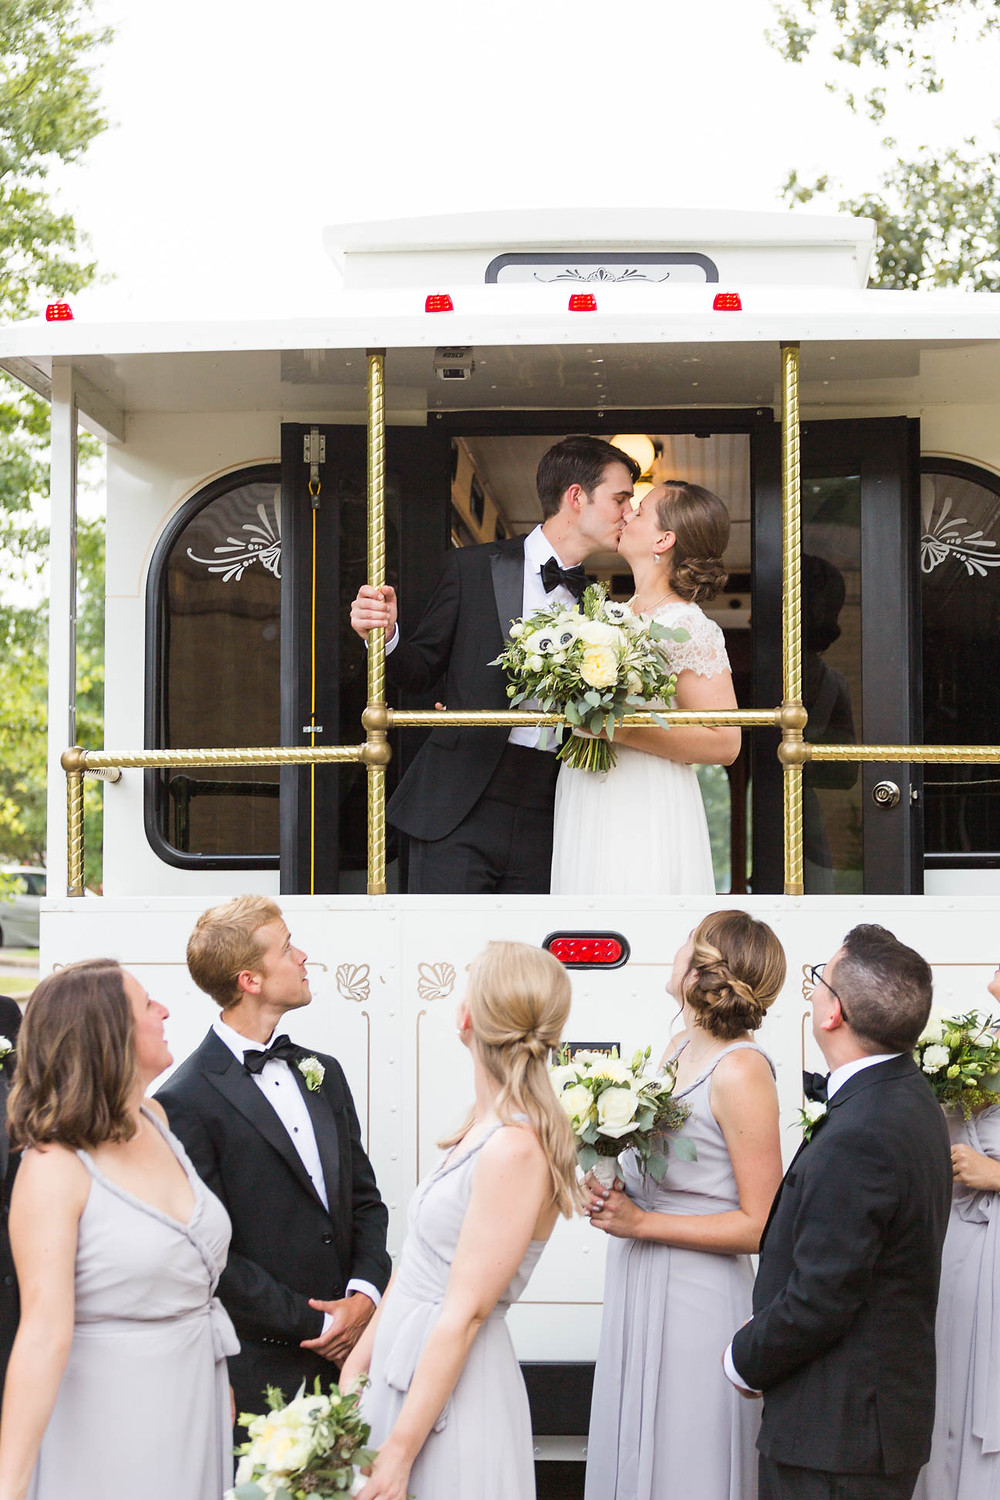 bride and groom kiss on trolley as wedding party looks on